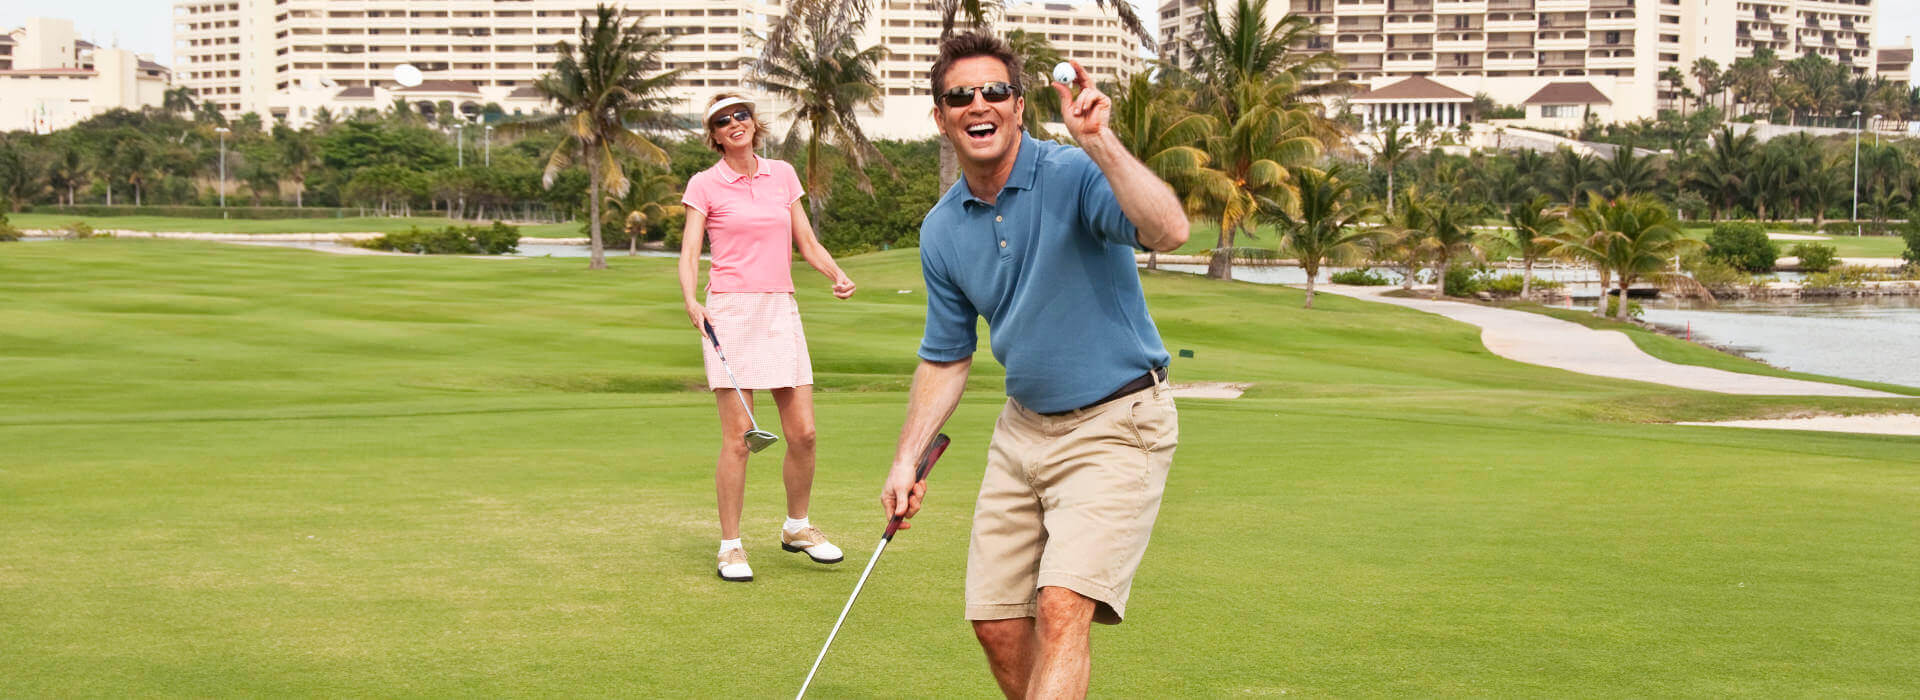 Cancun best golf courses for couples